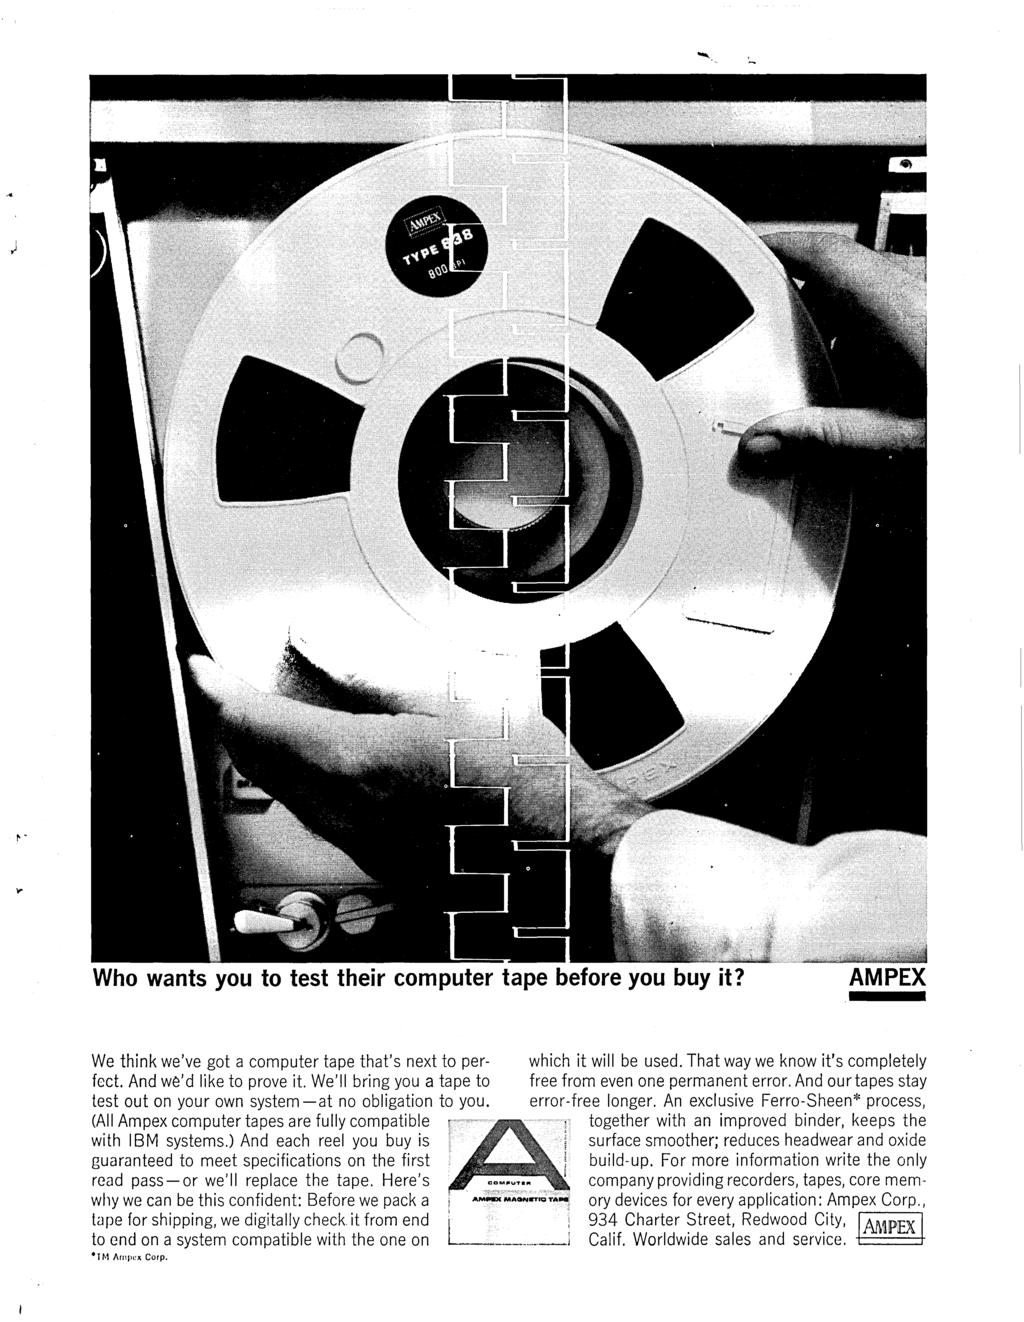 Who wants you to test their computer tape before you buy it? AMPEX We think we've got a computer tape that's next to perfect. And we'd like to prove it.